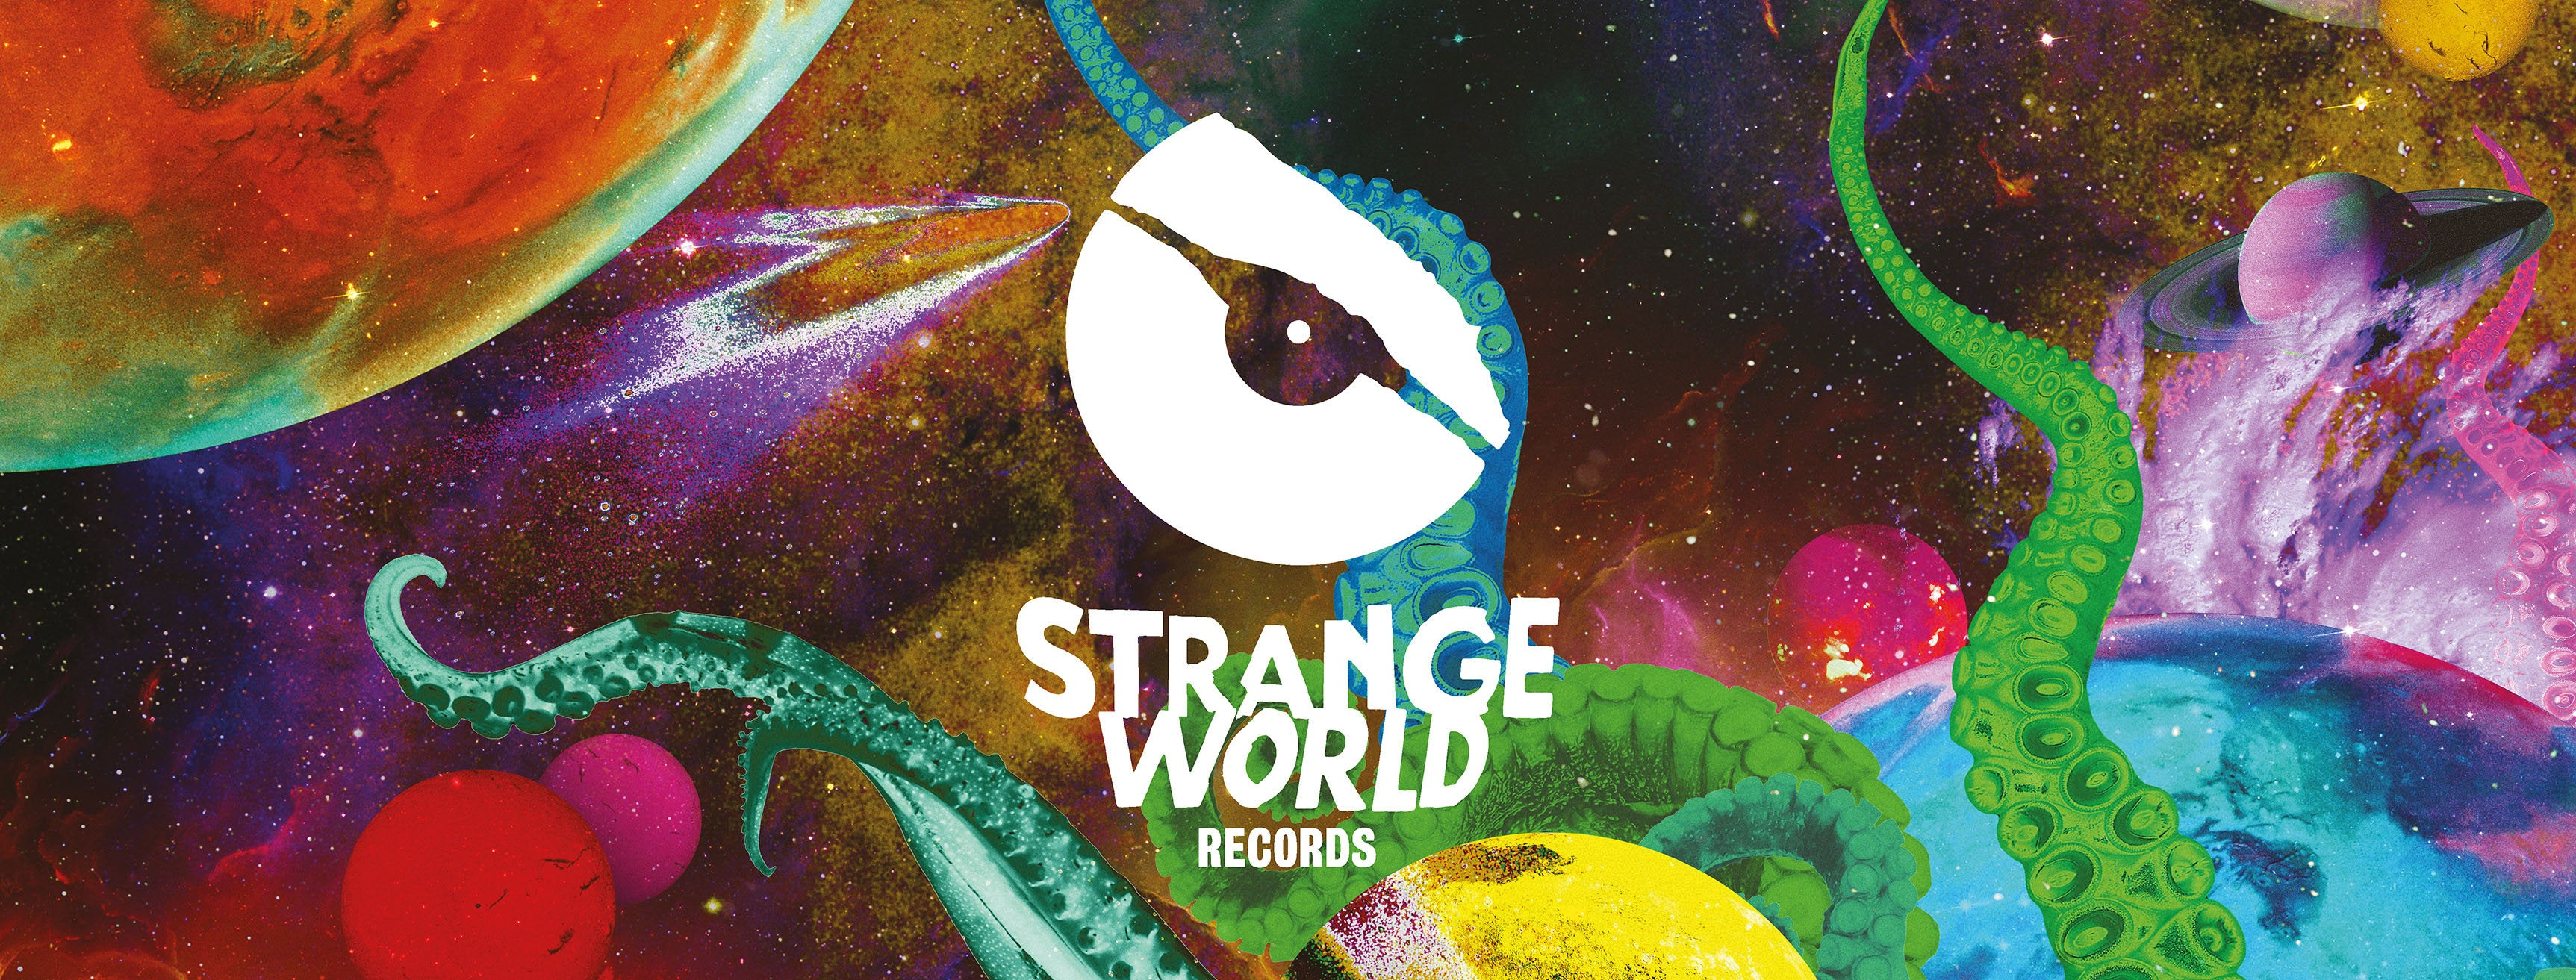 Strangeworld tentacles logo